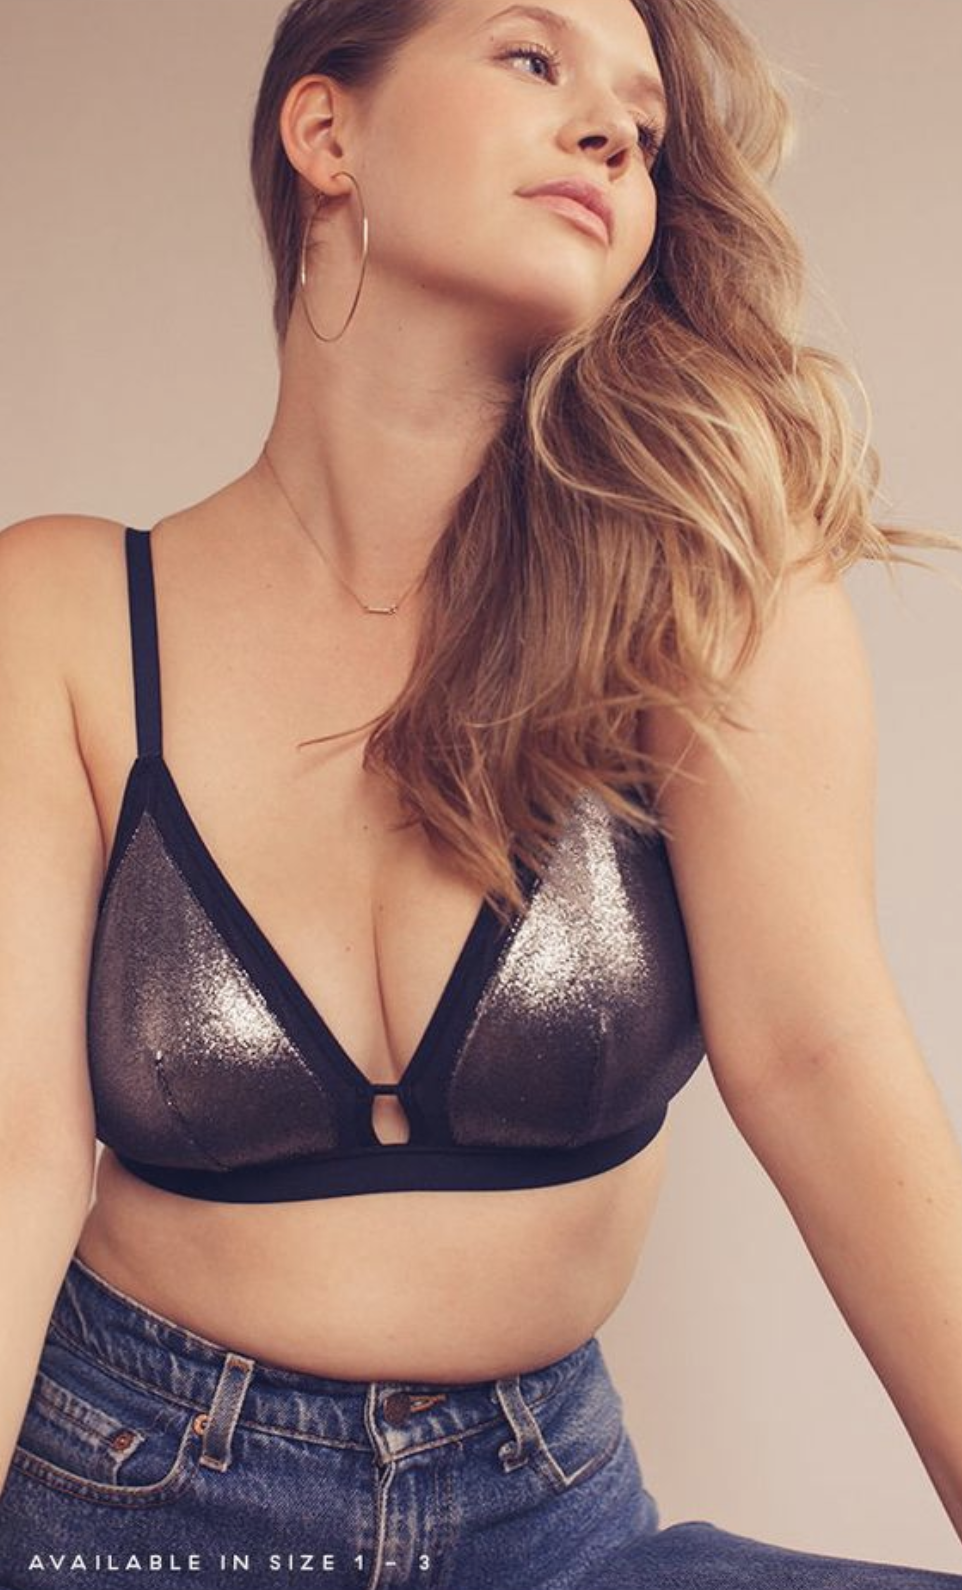 e8005a349e364 The Metallic Busty Bralette  Midnight Navy